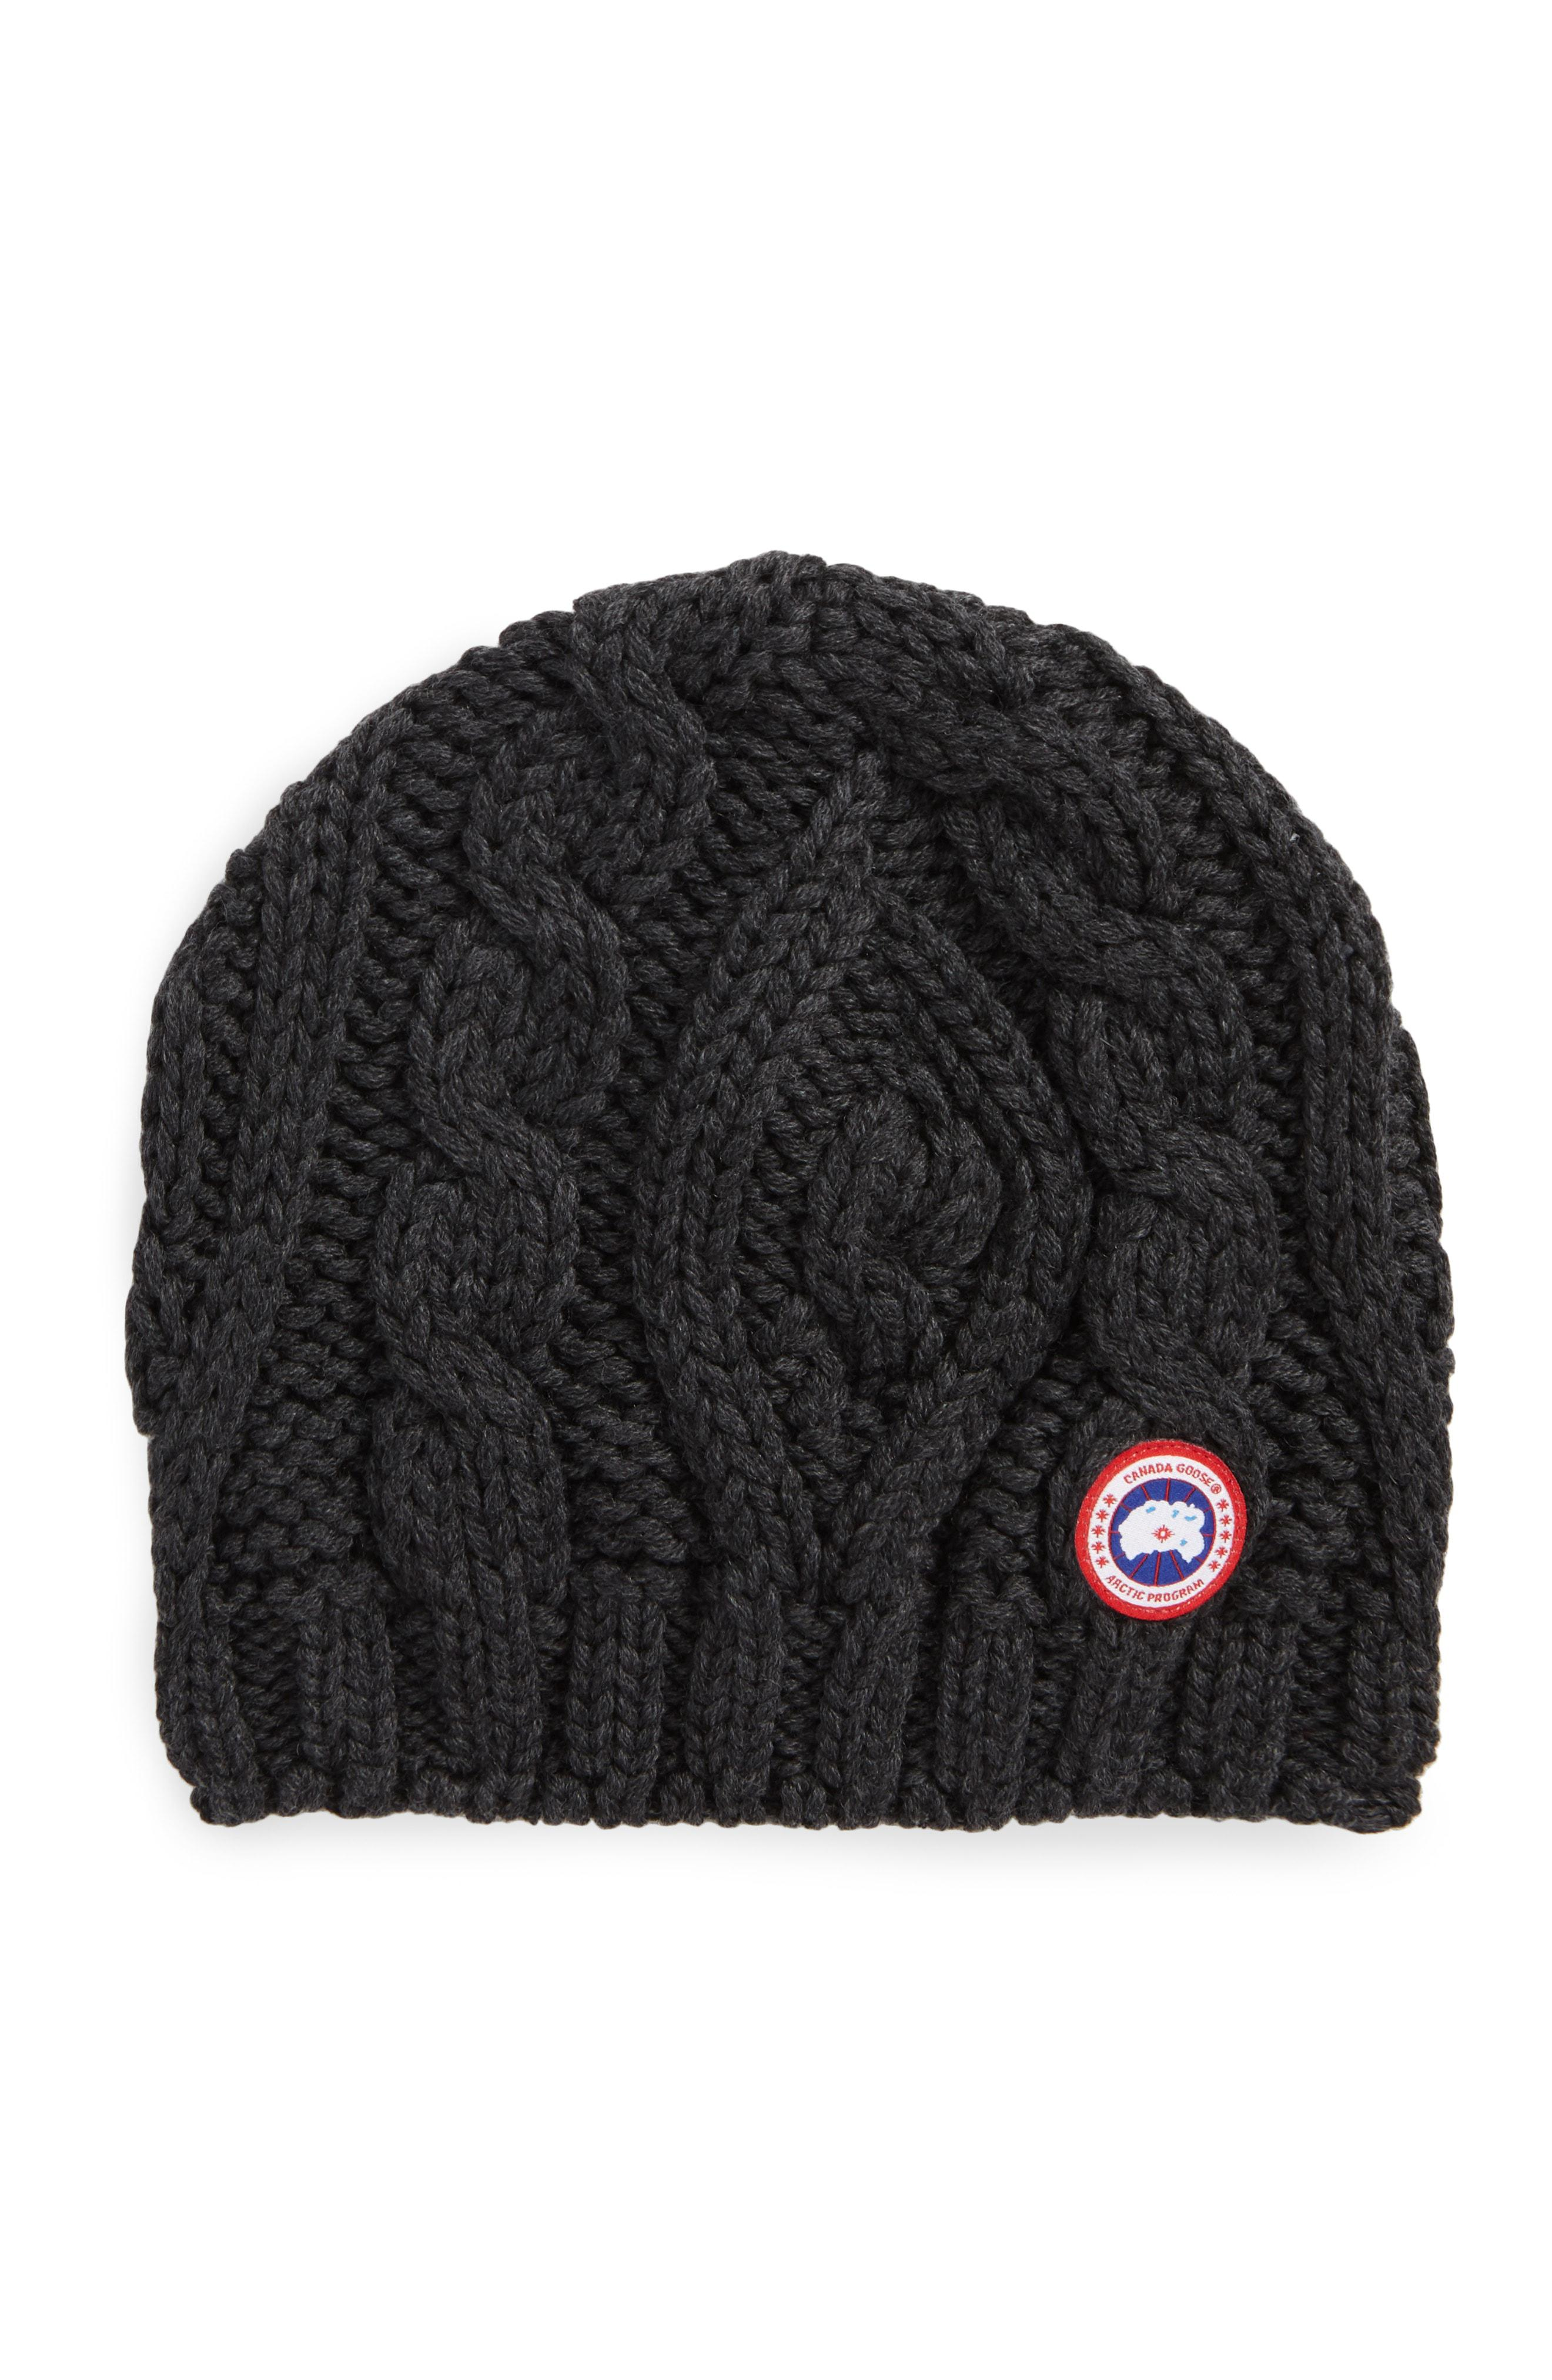 995d98fed Lyst - Canada Goose Cable Knit Merino Wool Beanie